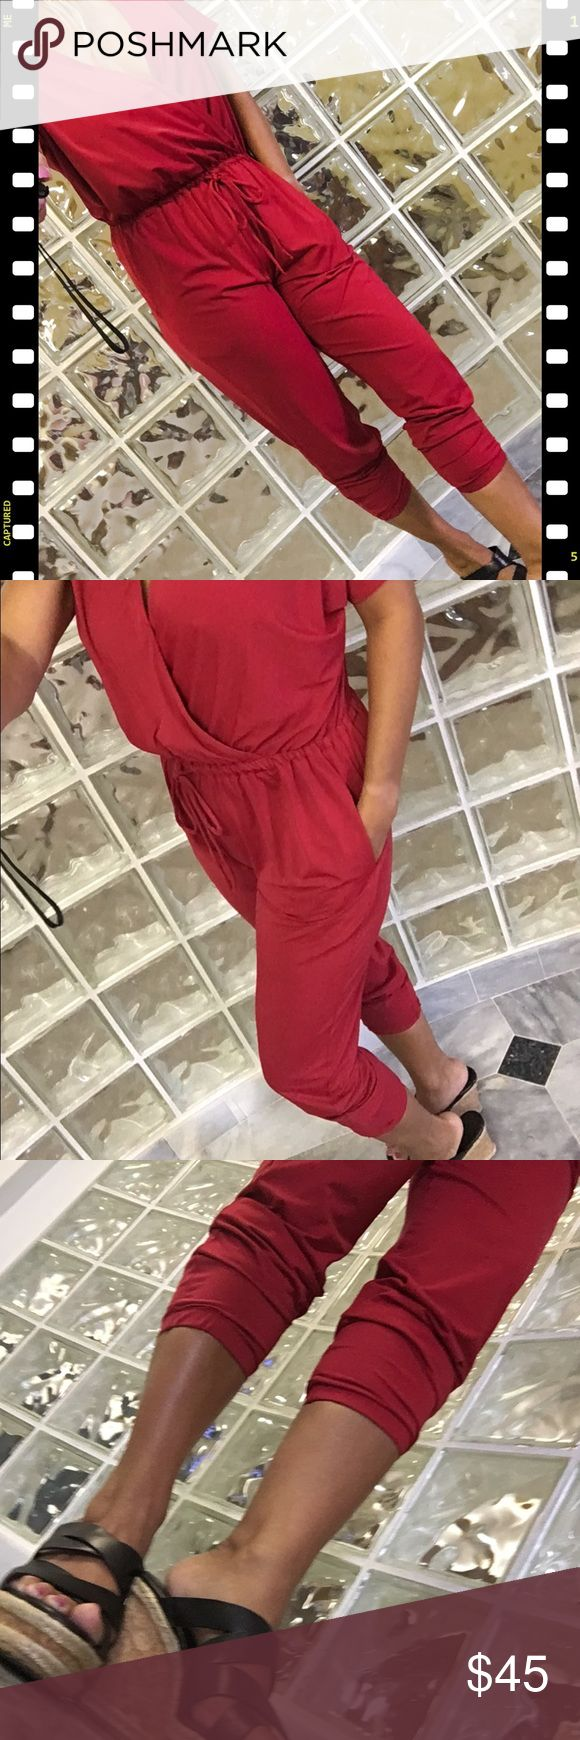 Kardashian Kollection Red Jogger Pant Romper Pants Kardashian Kollection Red Jogger Romper Pants.  Style up your summer wardrobe with this comfortable piece.  Never worn, tags removed.  Marked a medium size but fits more like a small.  Bundle with other items for a discount, or make an offer! Kardashian Kollection Pants Jumpsuits & Rompers